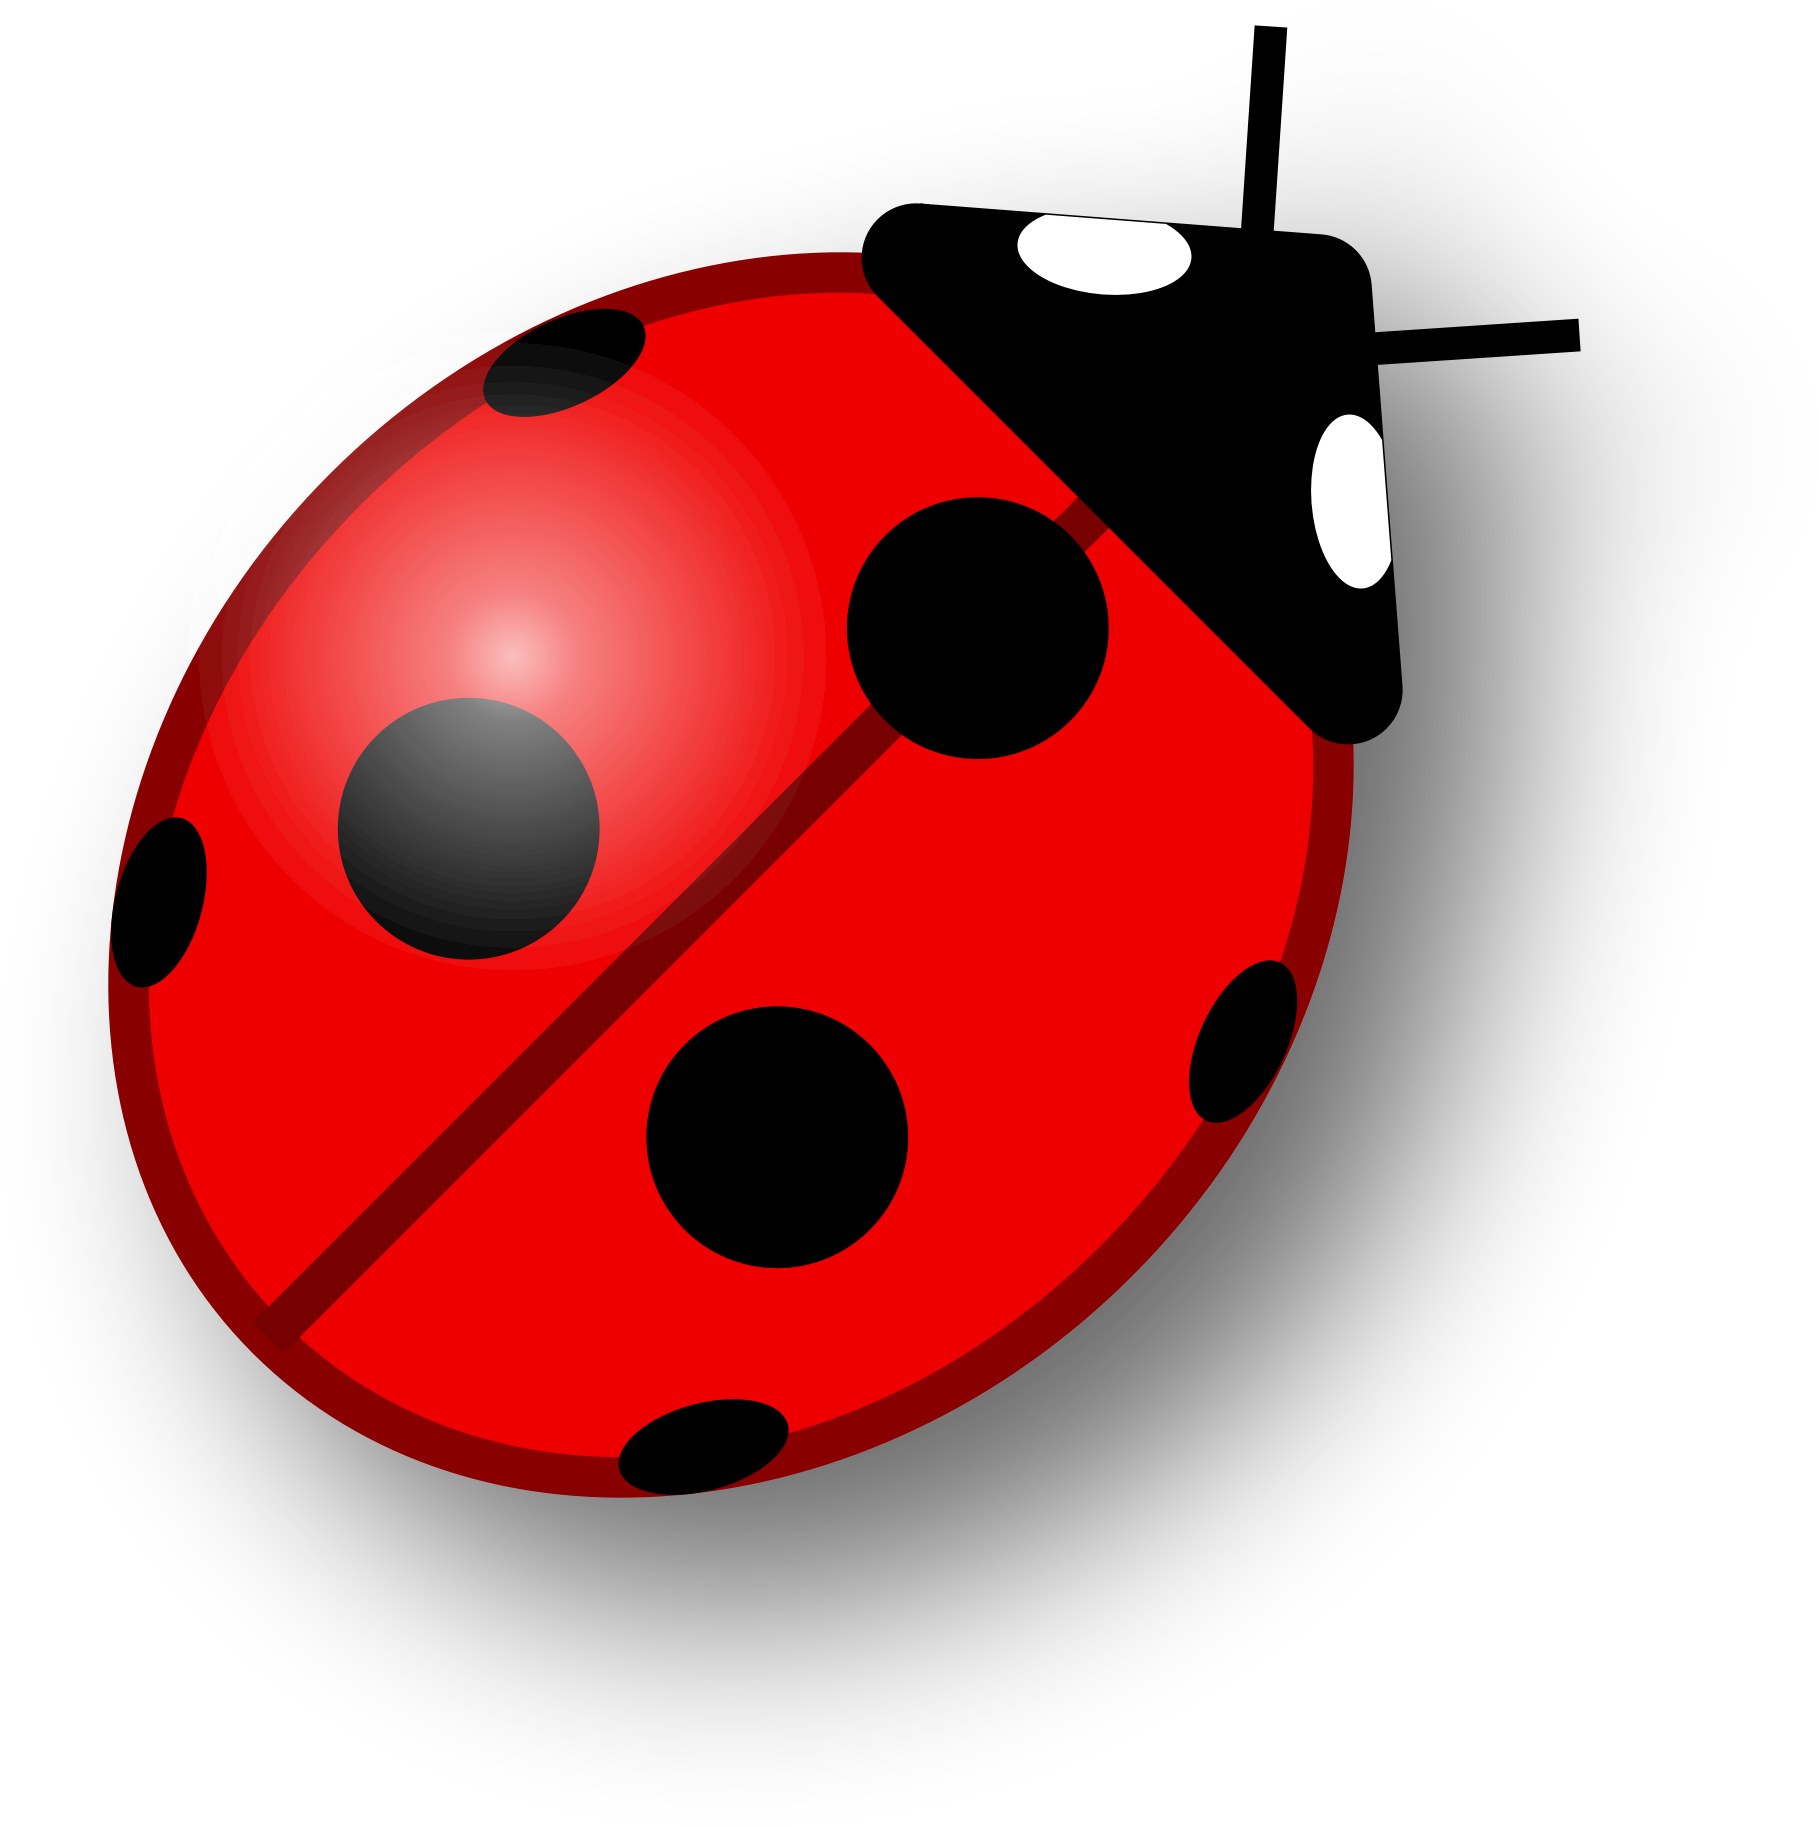 Ladybugs clipart simple. Ladybug on leaf affordable